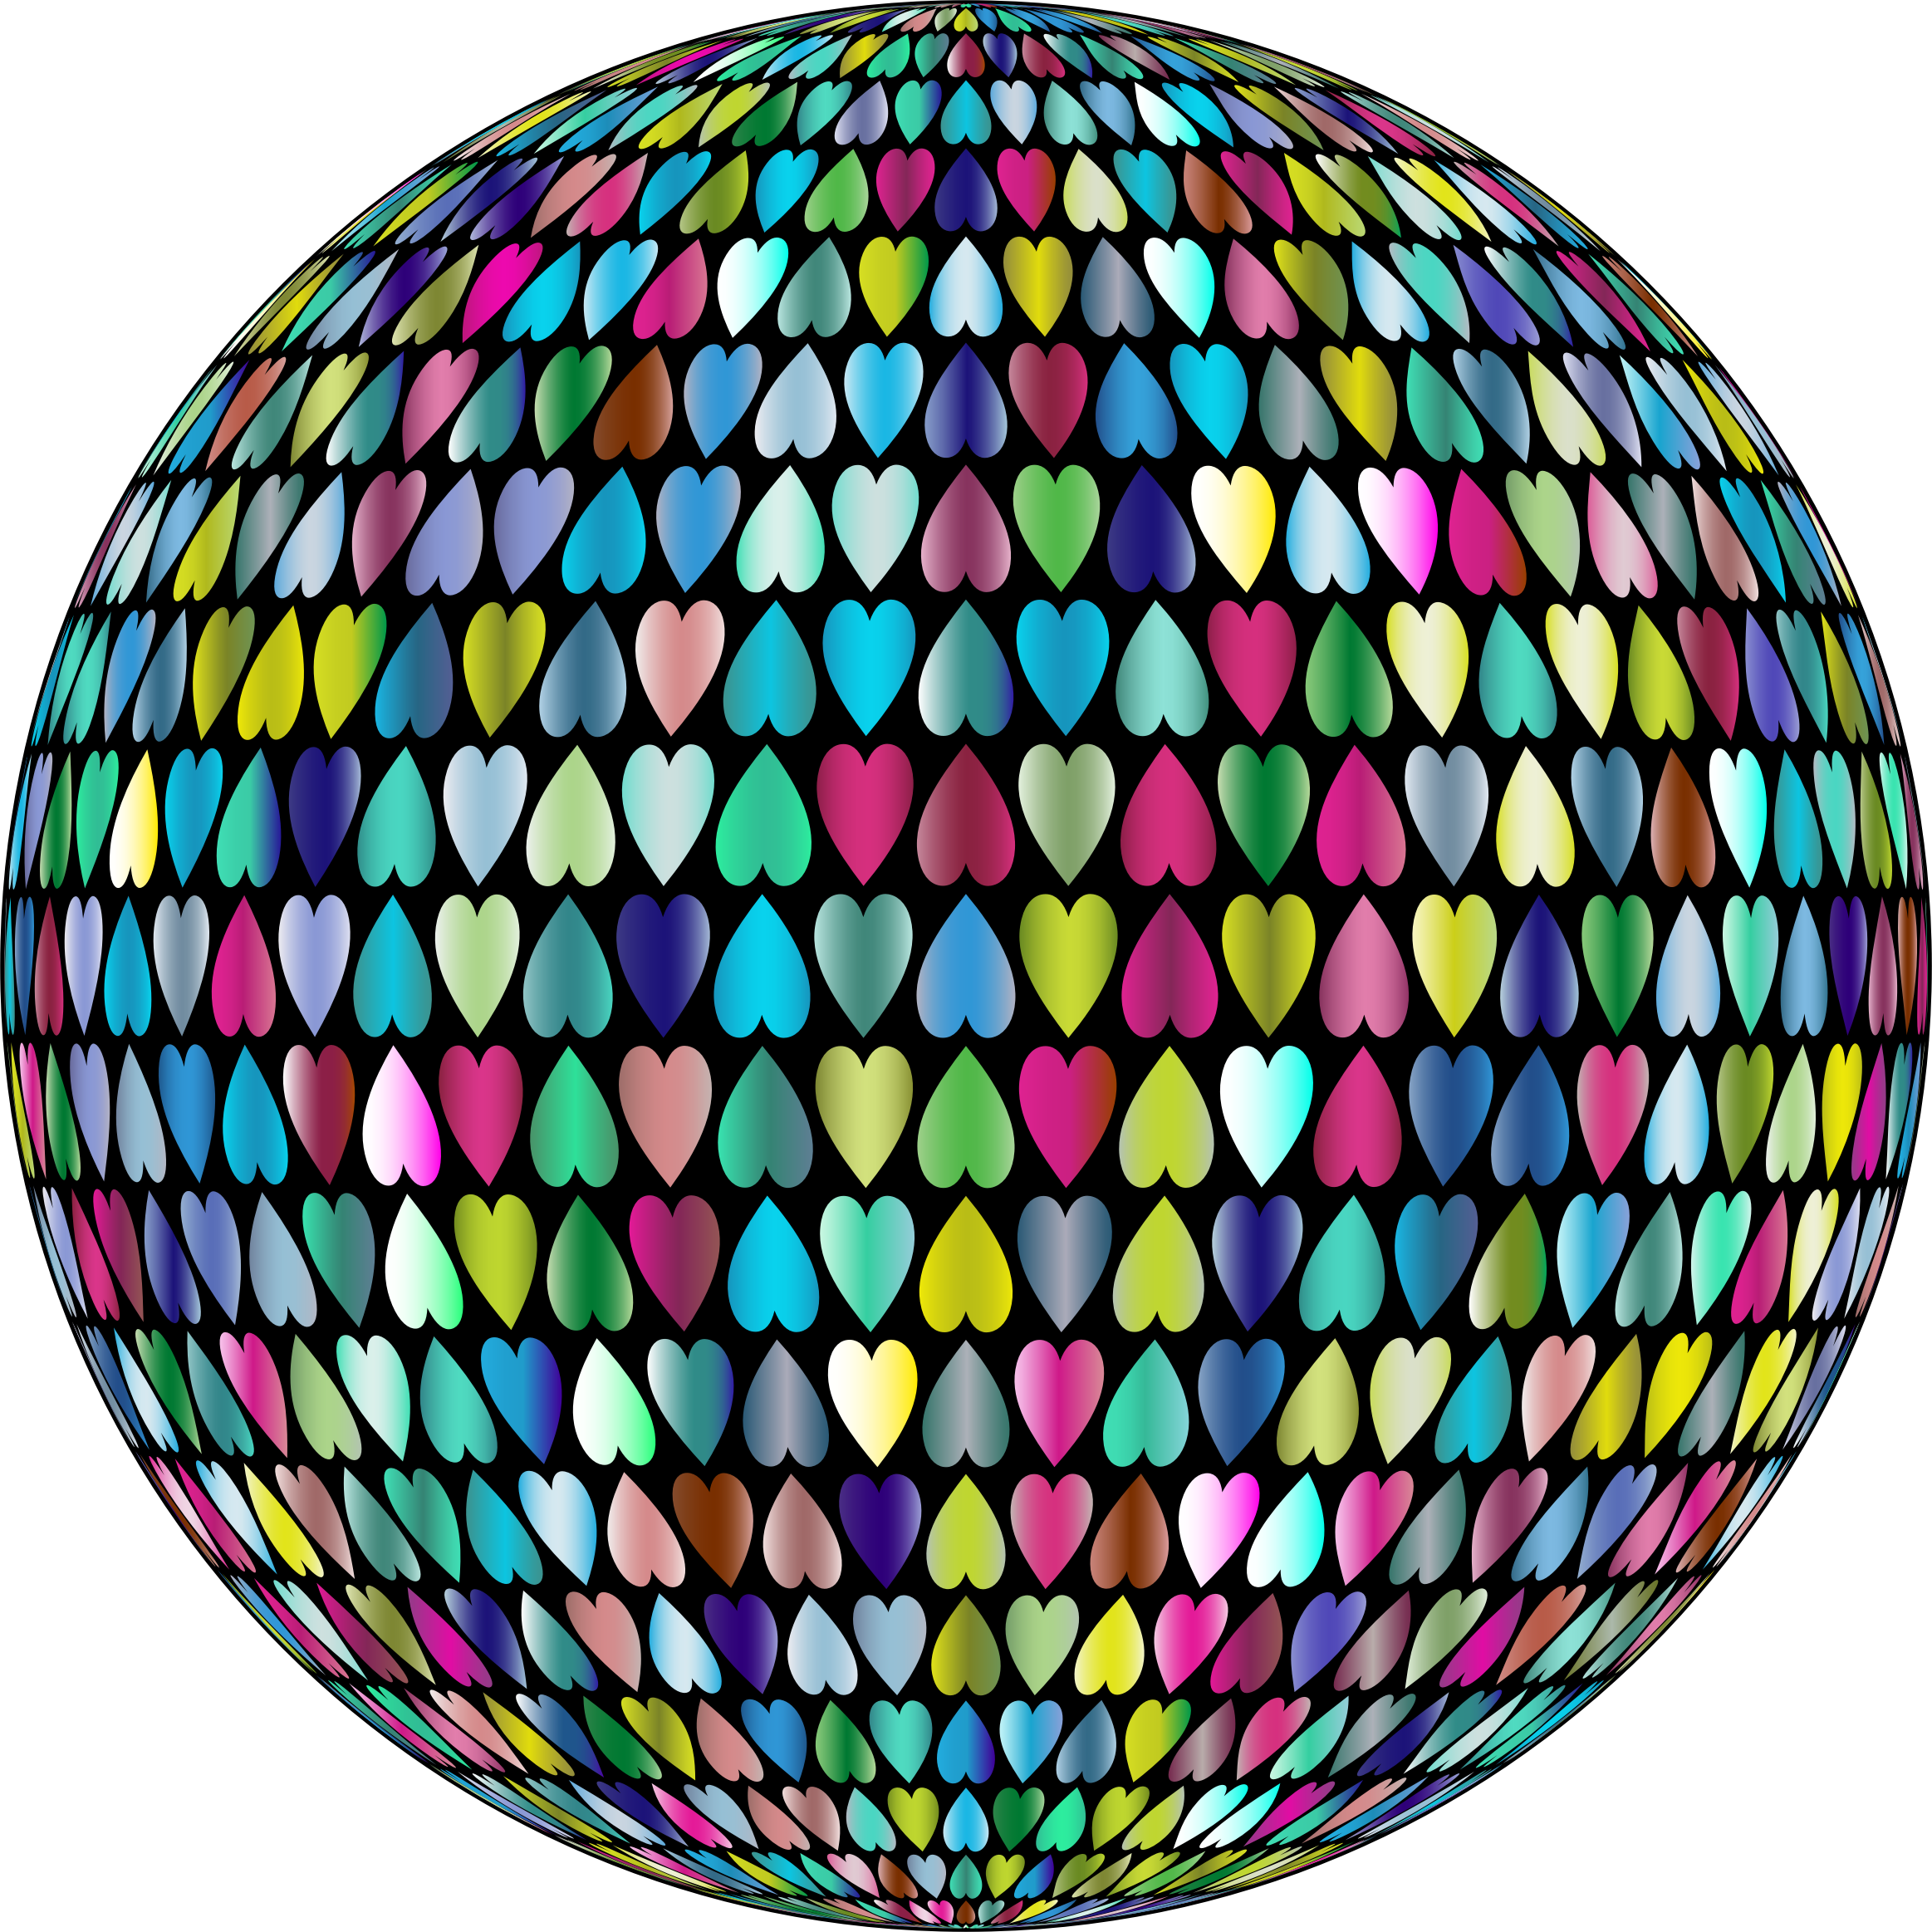 Prismatic Alternating Hearts Sphere 3 by GDJ